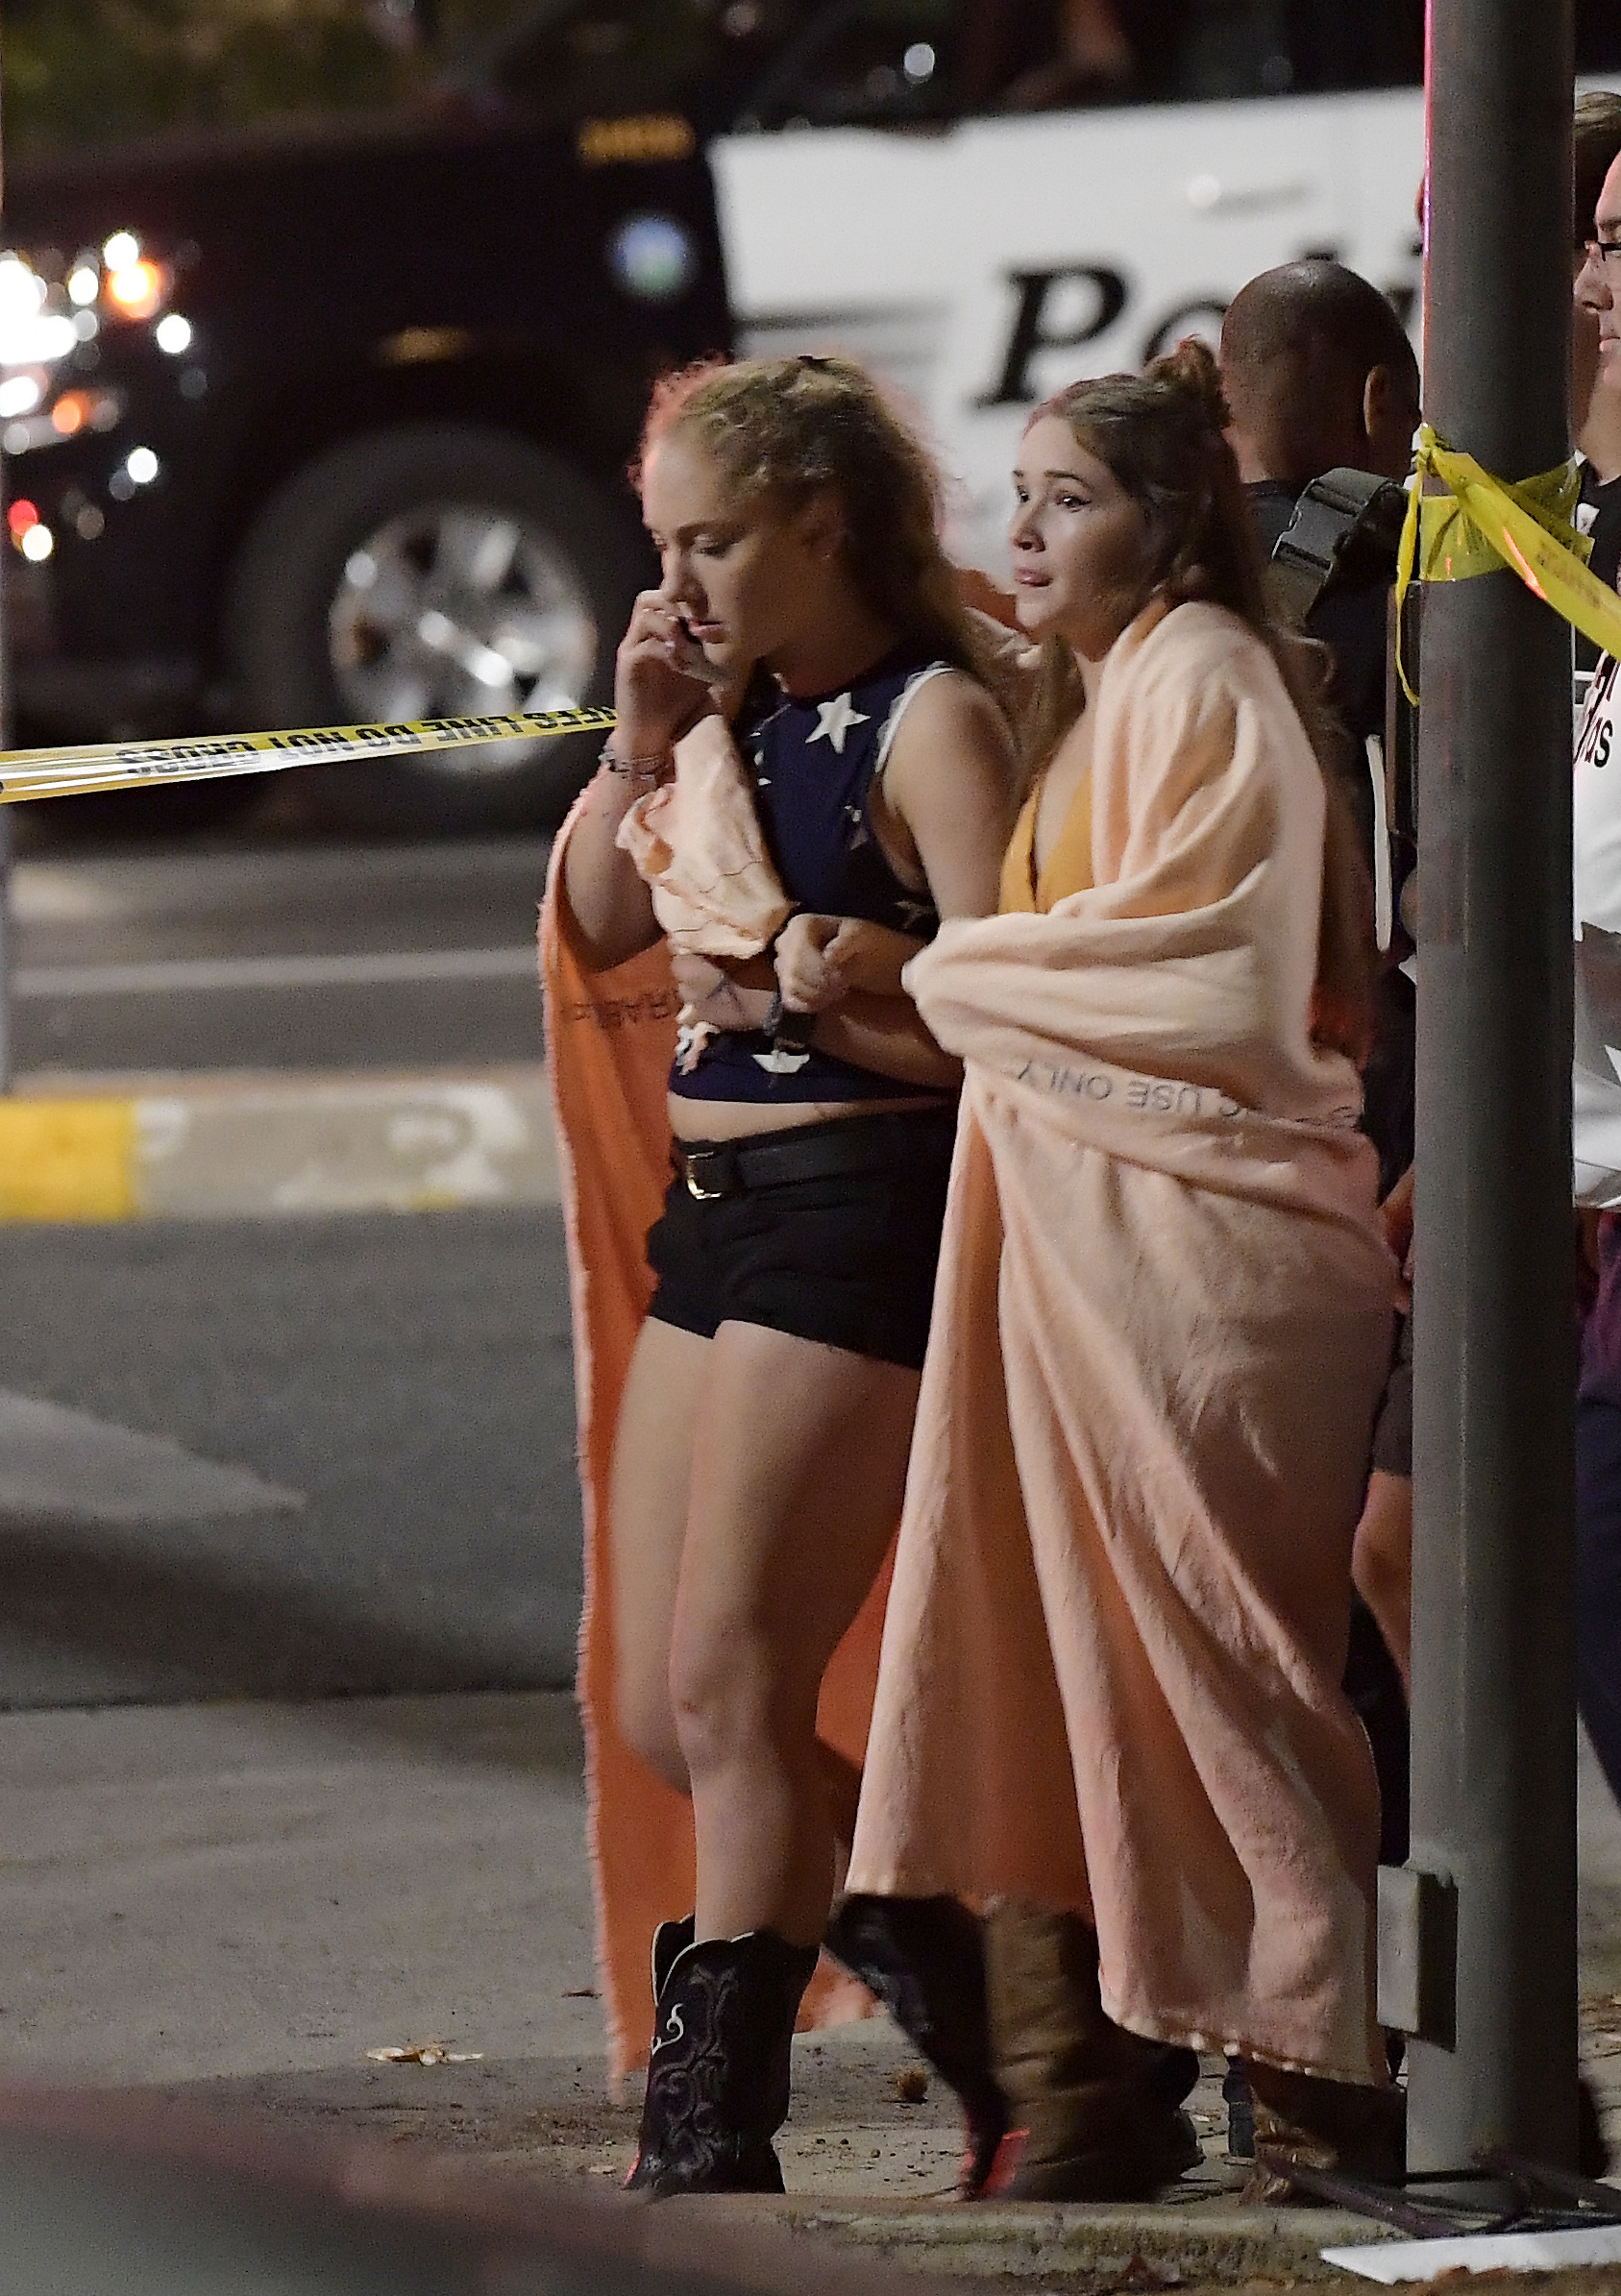 "<div class=""meta image-caption""><div class=""origin-logo origin-image none""><span>none</span></div><span class=""caption-text"">Two young ladies comfort each other after a shooting at a California nightclub. (AP Photo/Mark J. Terrill)</span></div>"